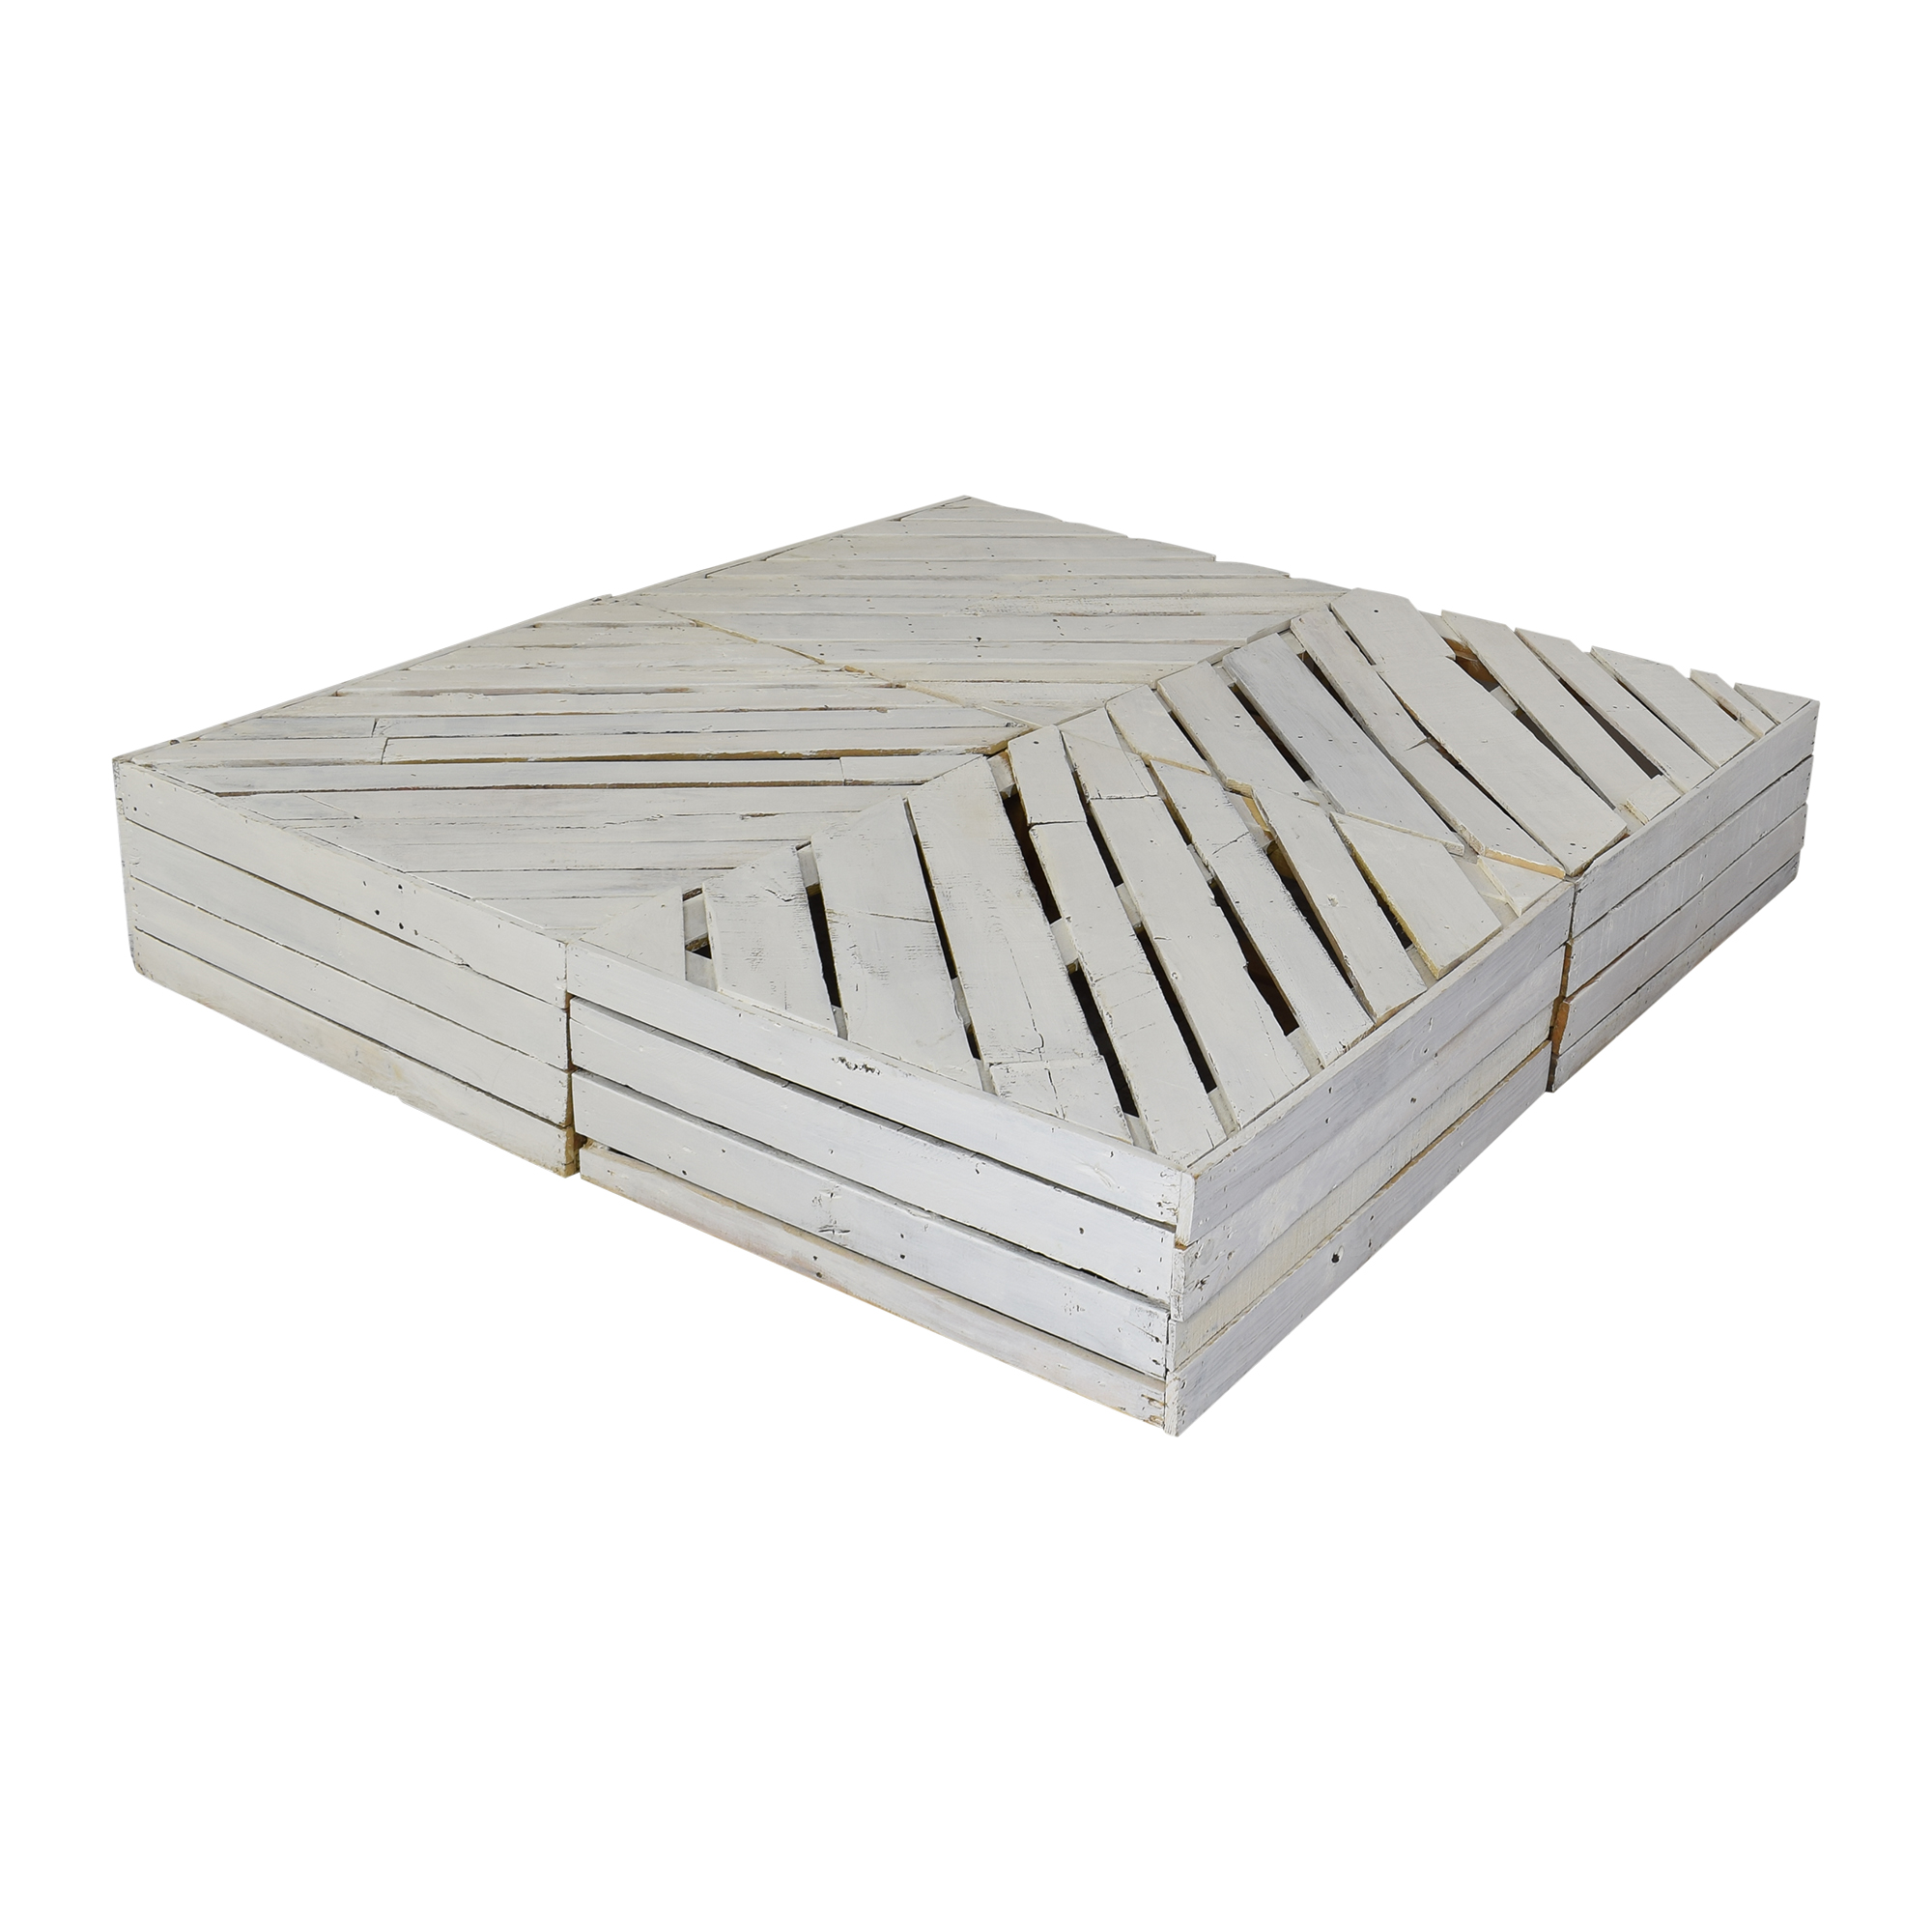 Custom White Pallet Queen to Full Bed Frame with Drawers for sale